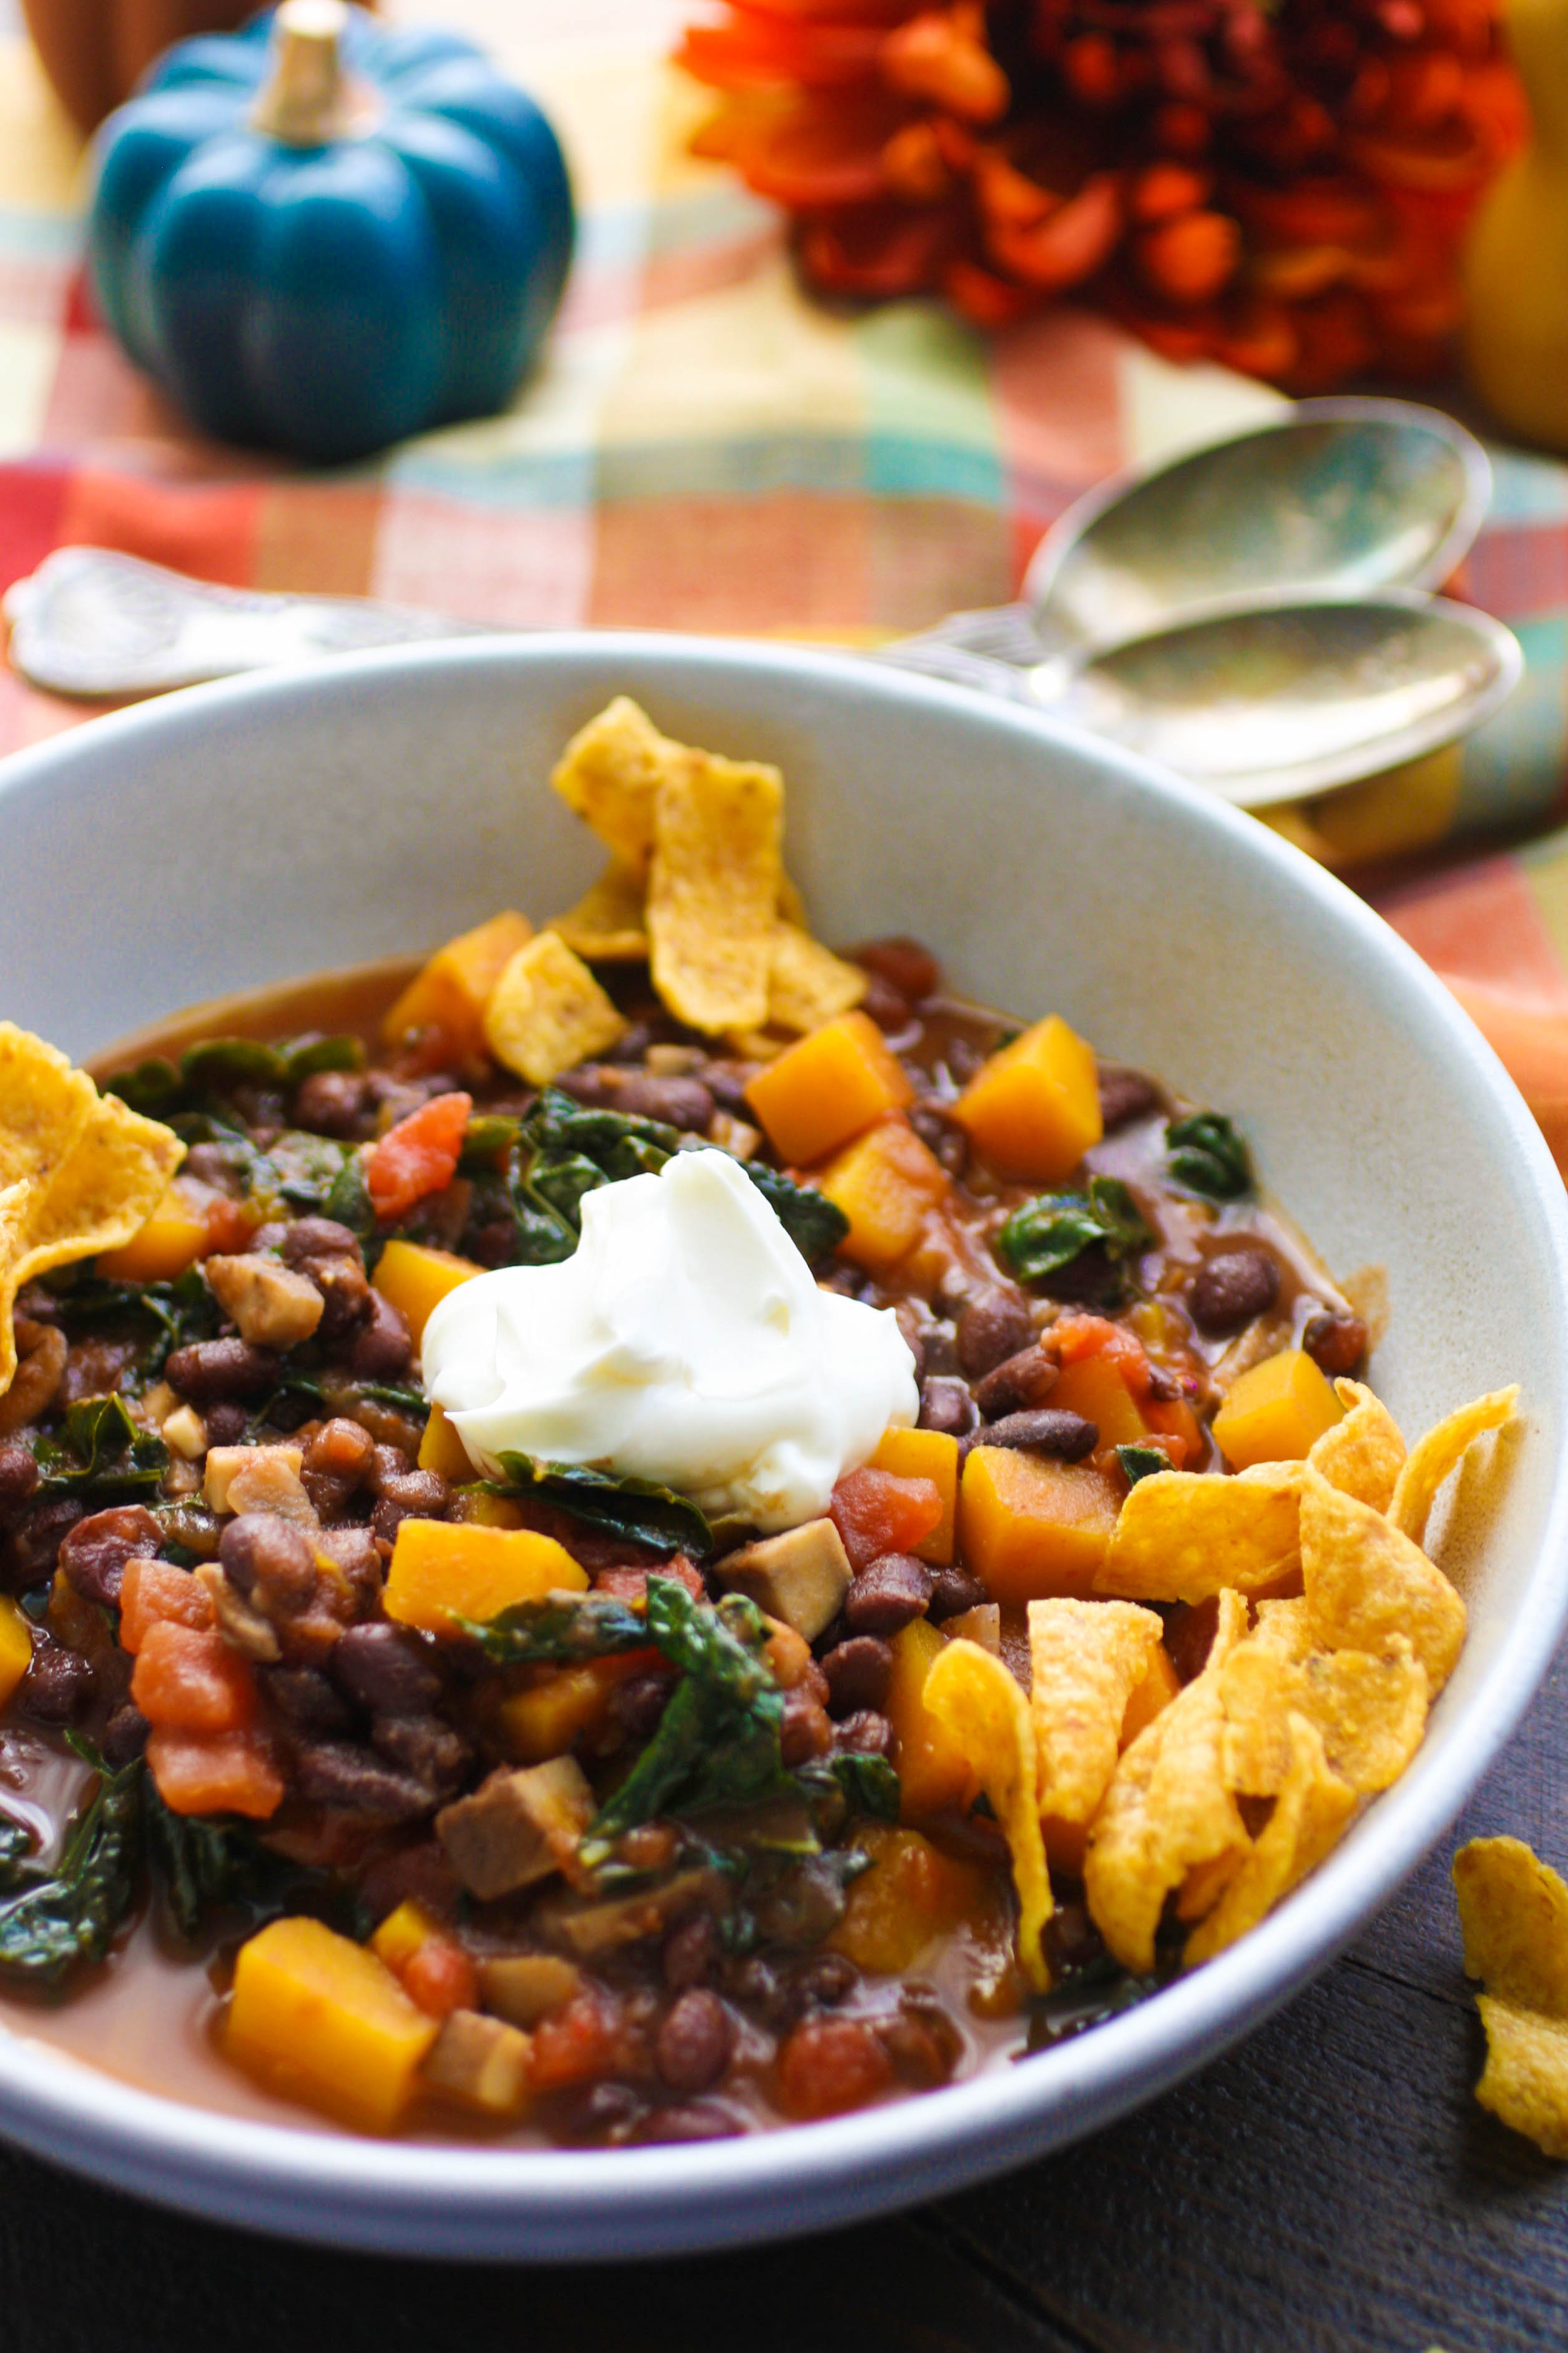 Don't forget the sour cream and corn chips for this Butternut Squash and Black Bean Chili with Mushrooms & Kale! You'll love all the ingredients in Butternut Squash and Black Bean Chili with Mushrooms & Kale.